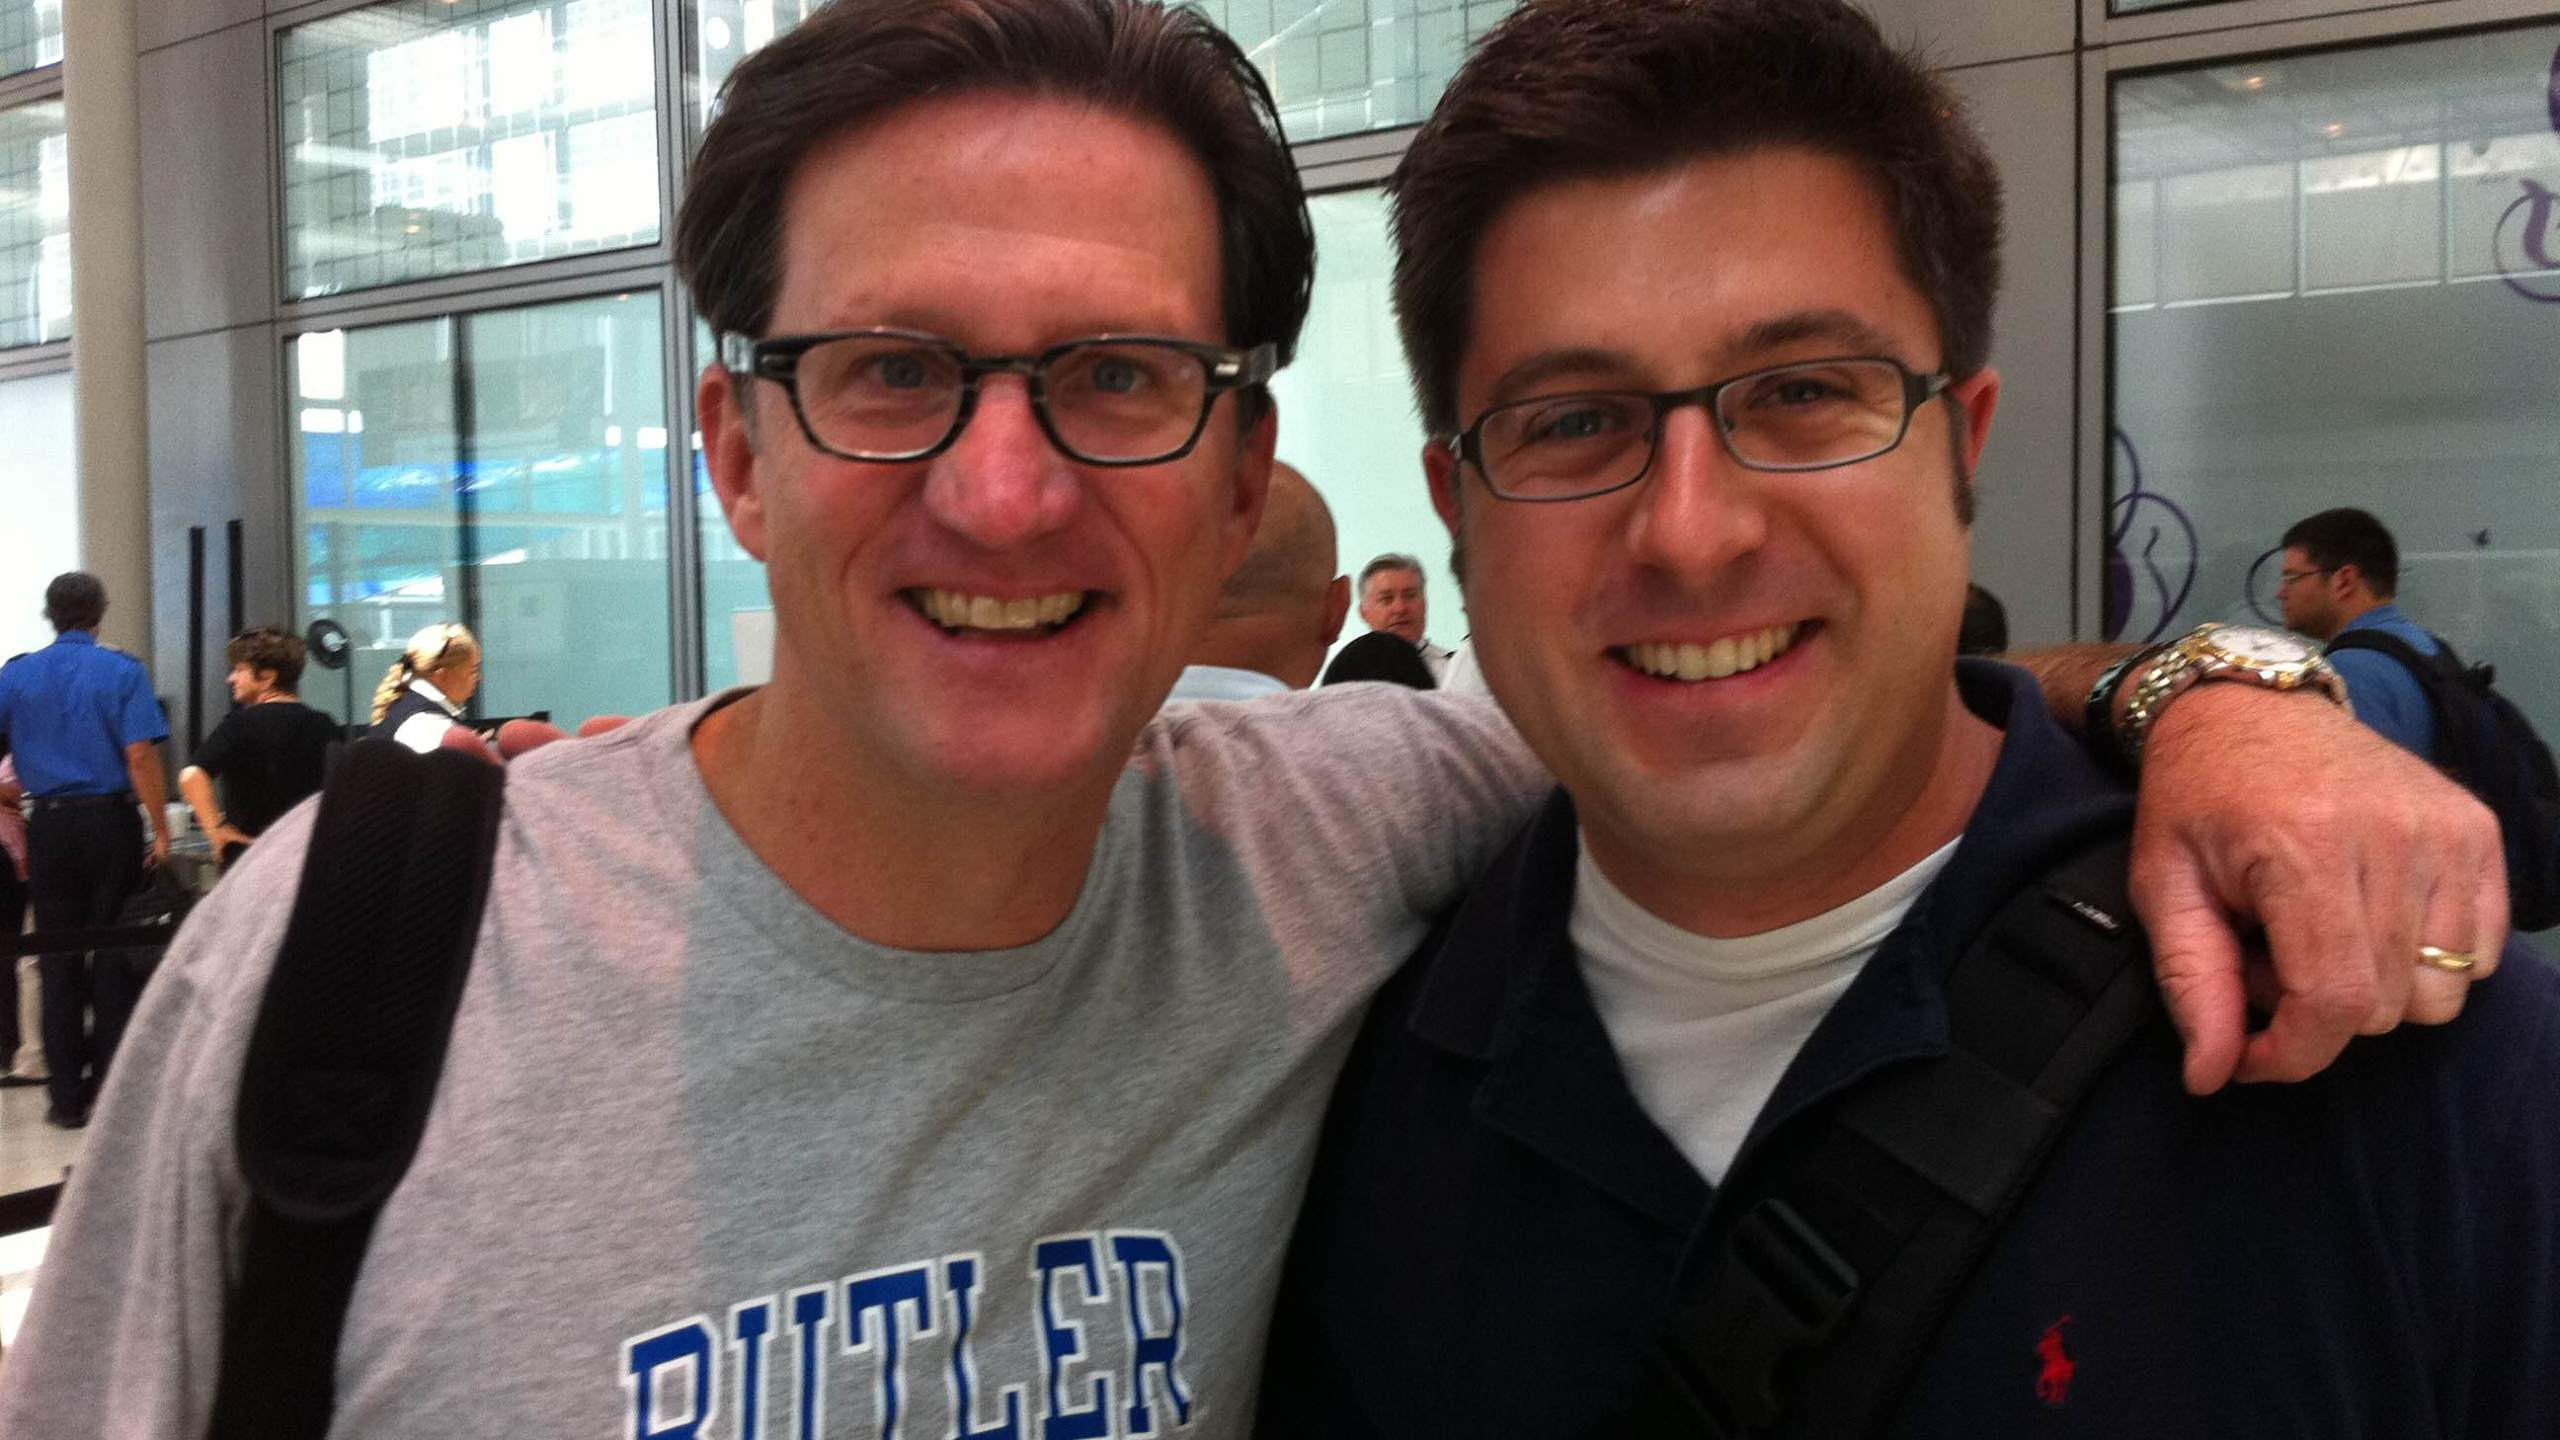 WGN Radio host John Williams bumps into OTL host Mike Stephen at O'Hare International Airport... but they did not dine at The Publican. [photo circa August 3, 2011]